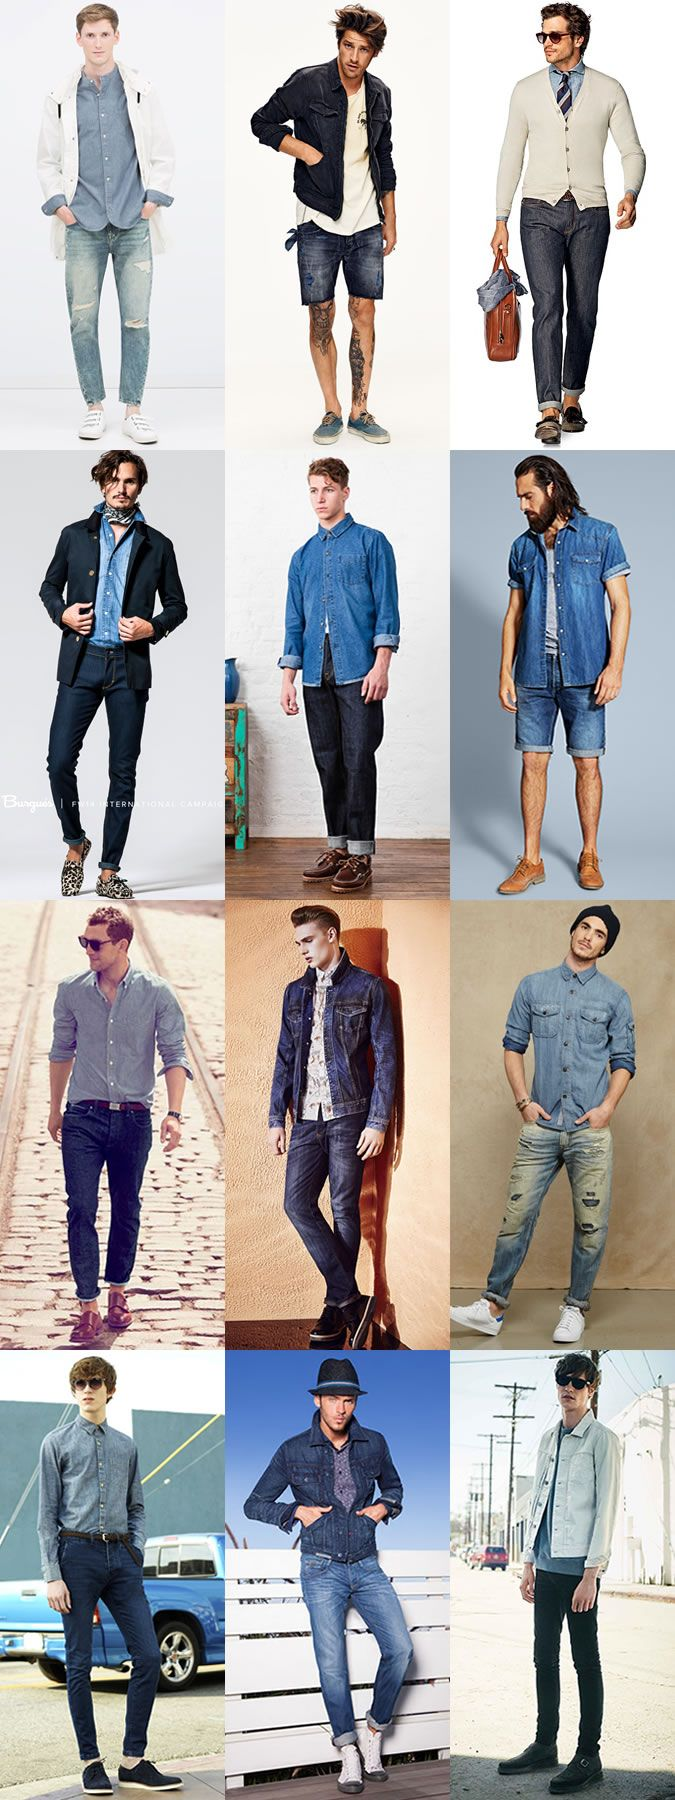 The Easy Ways To Wear Denim This Season: Double Denim Outfits Lookbook Inspiration